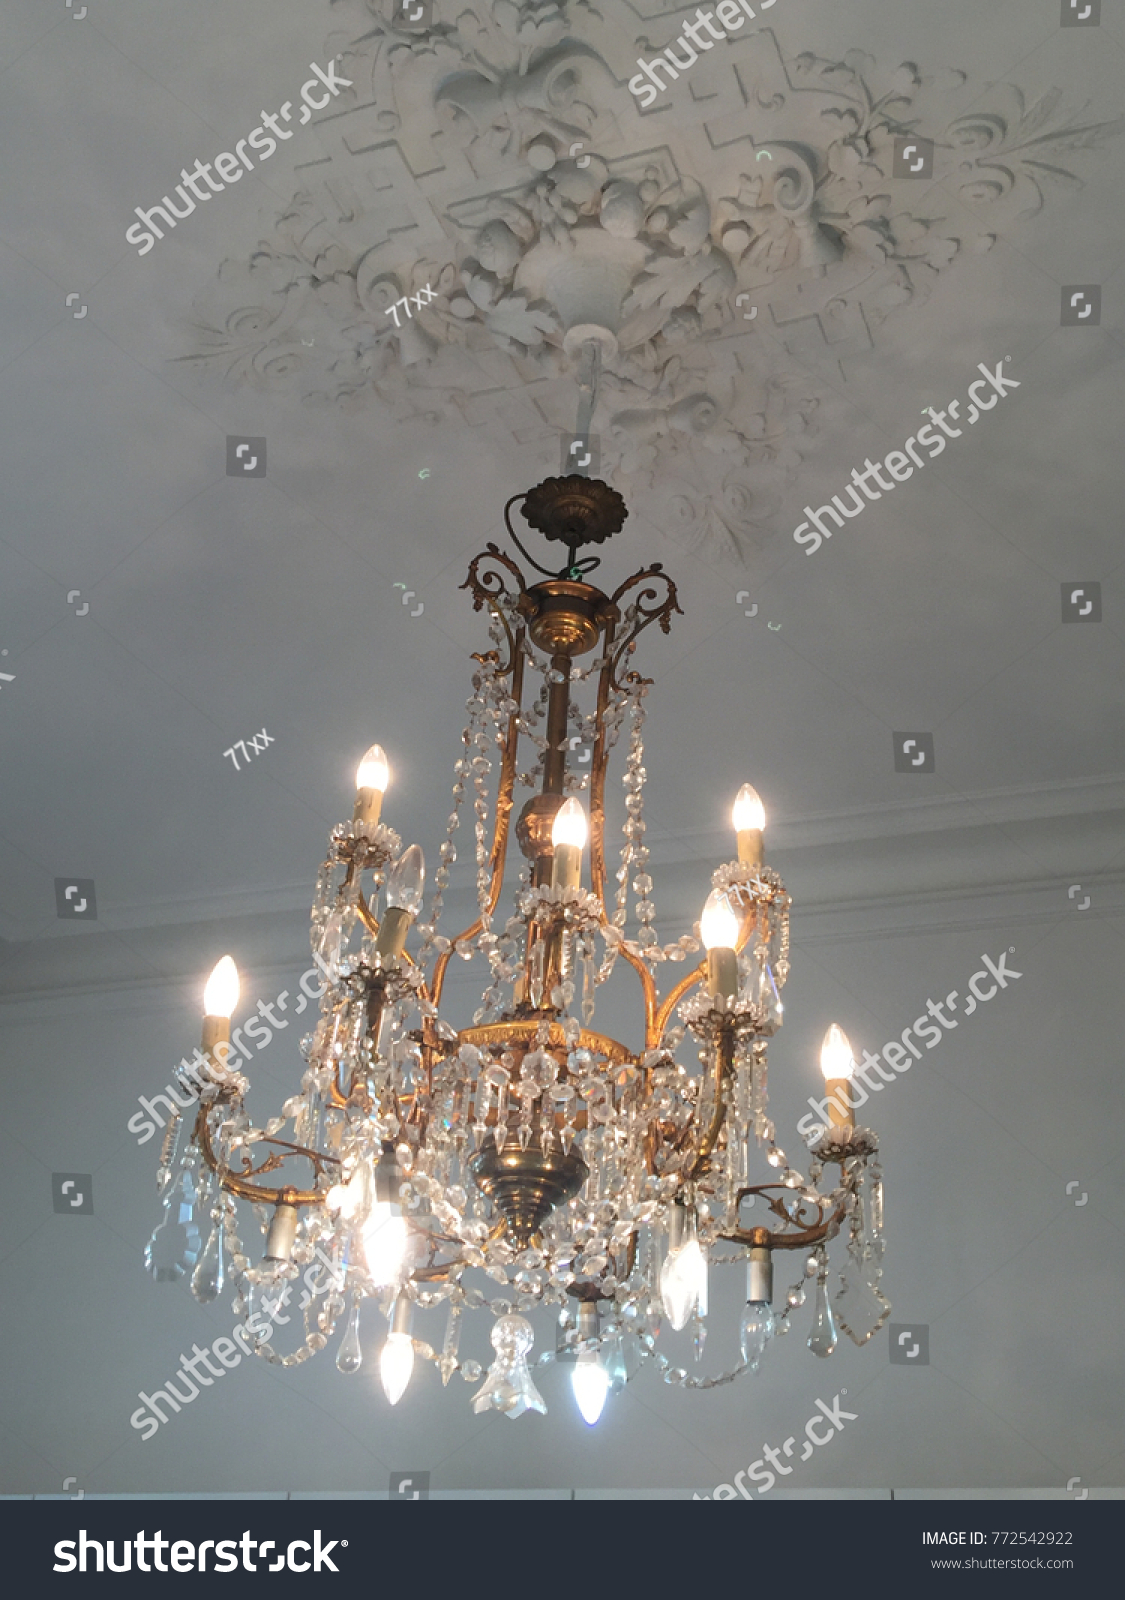 Luster Lampe Lampe Chandelier Luster Ceiling Stucco Stock Photo Edit Now